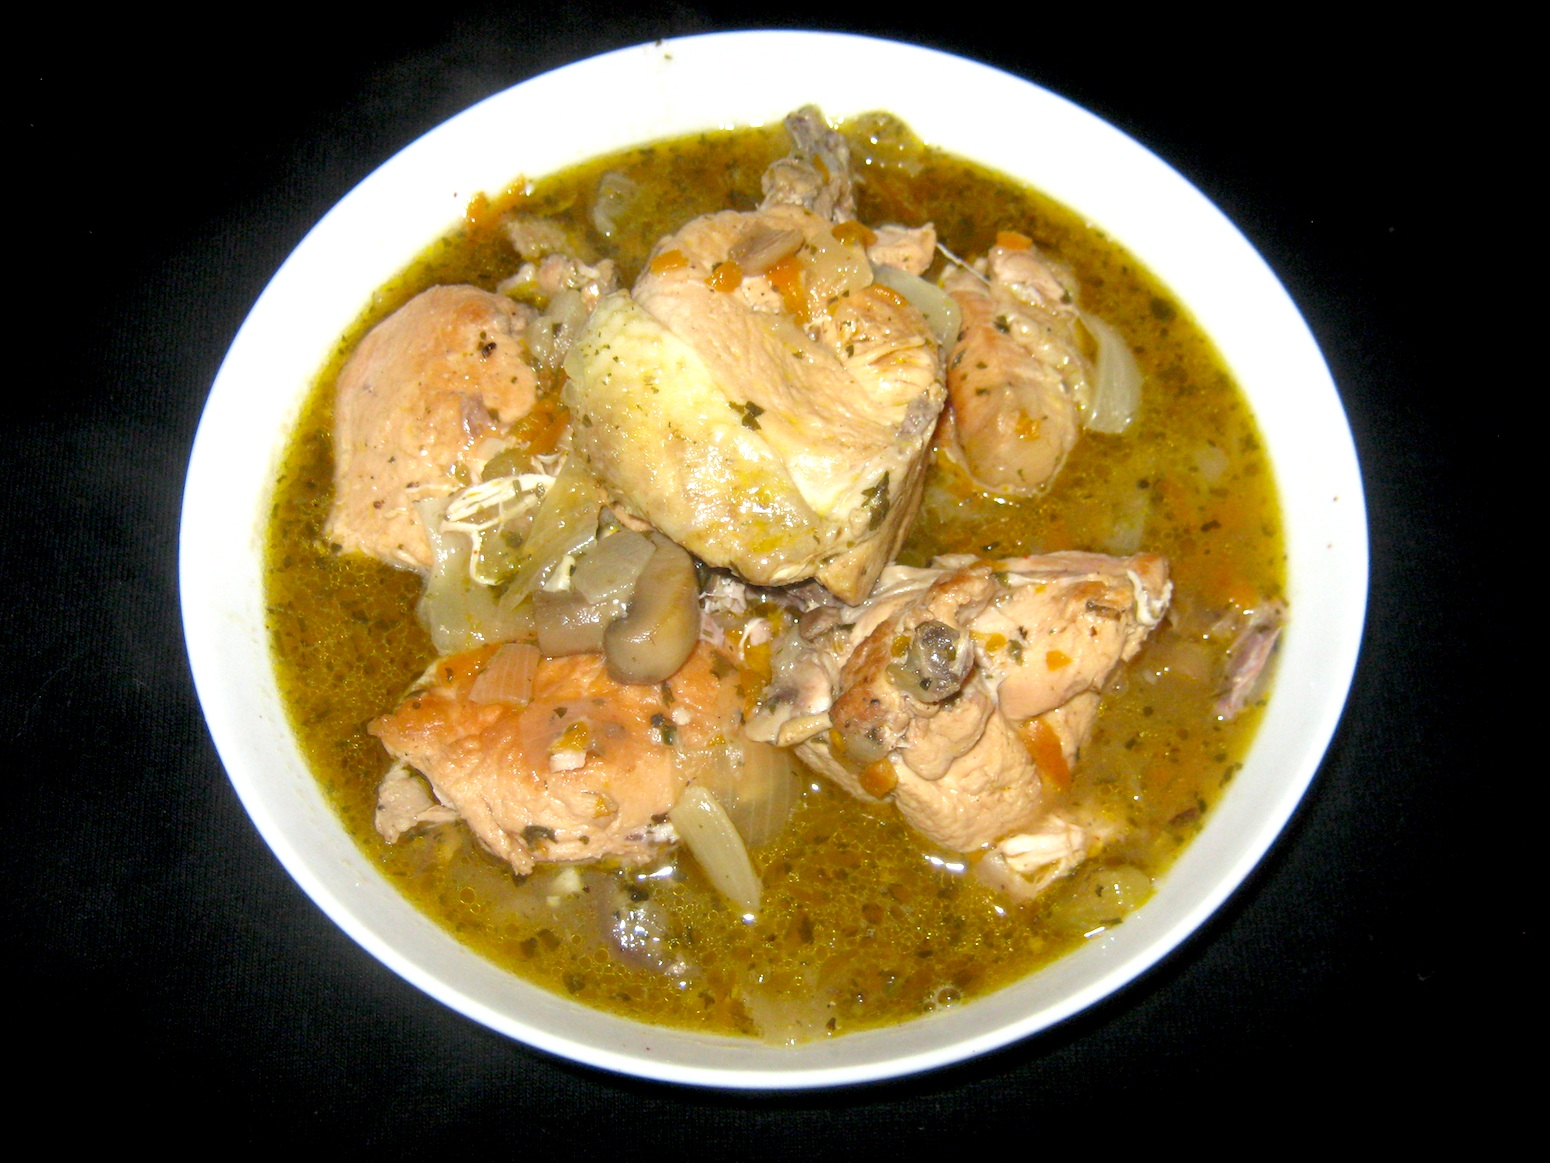 Coq au vin blanc (Chicken in white wine sauce) served in a white bowl